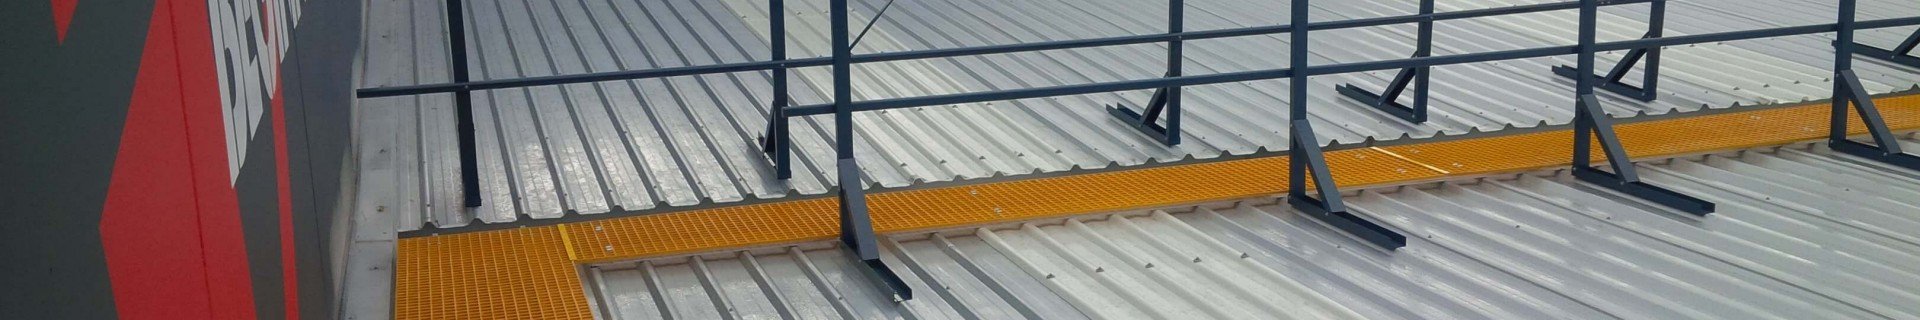 Roof Iron Bunnings